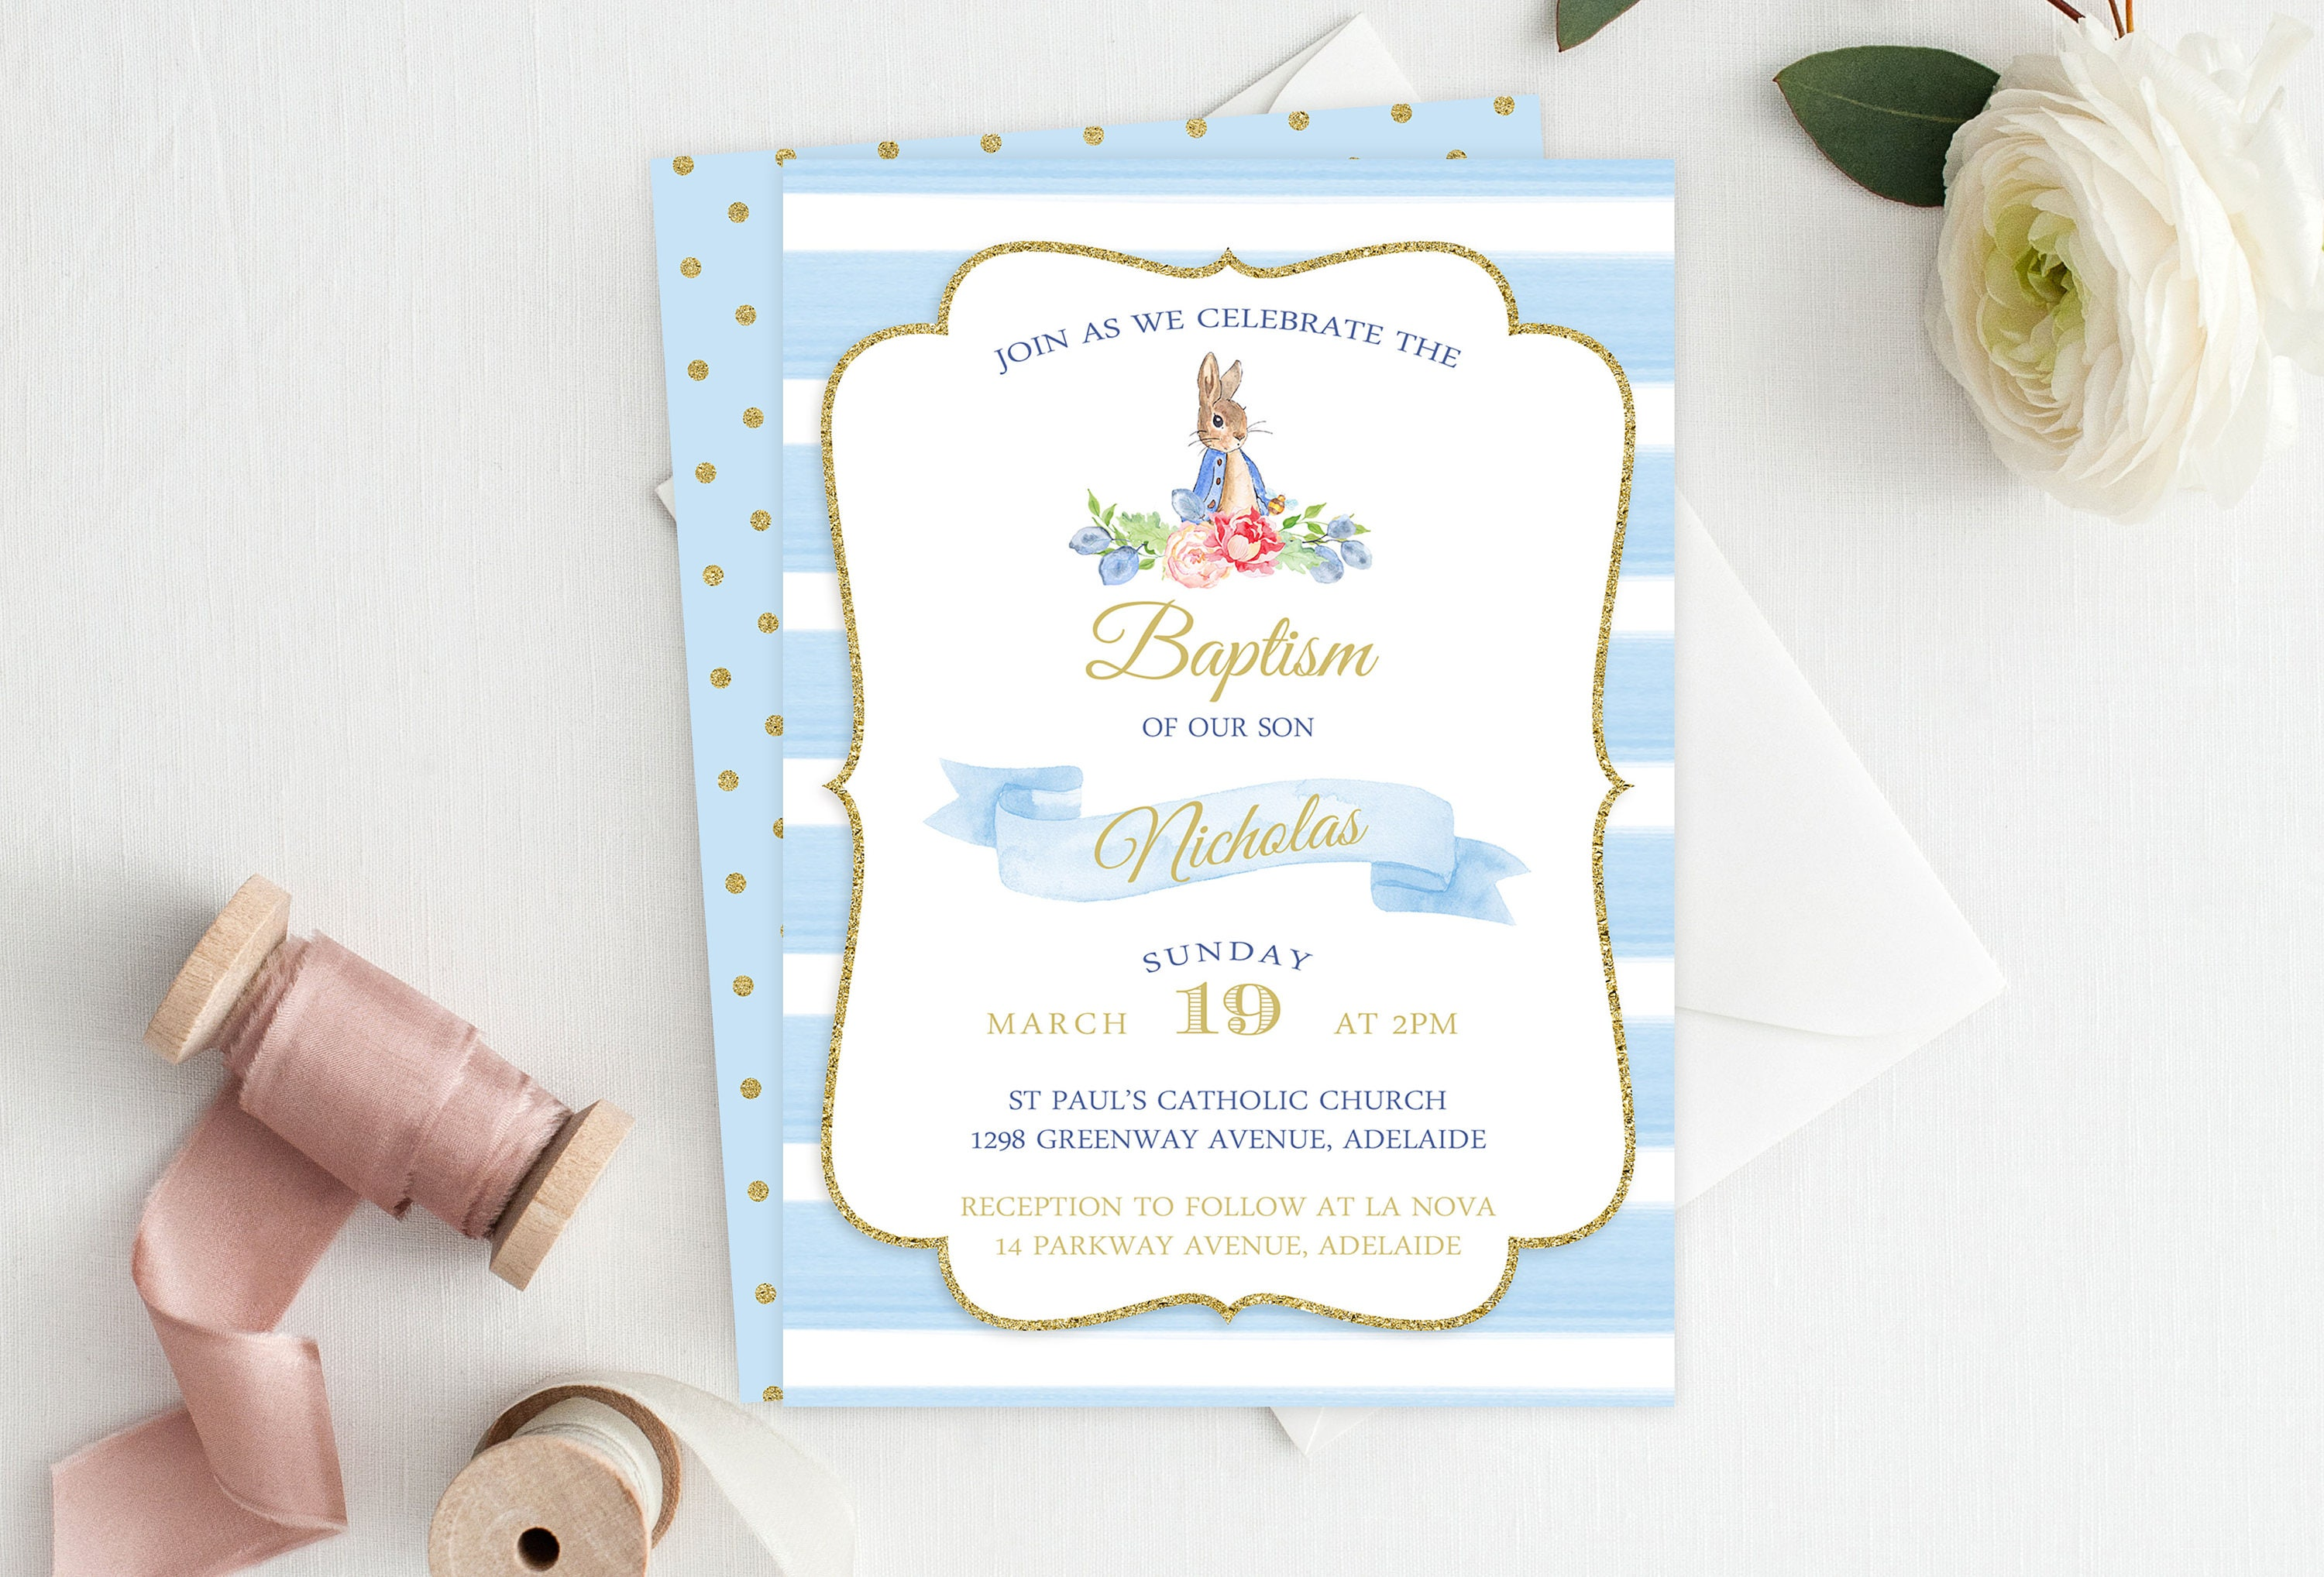 Blue bunny boy baptism invitation christening invitation baptism blue bunny boy baptism invitation christening invitation baptism invite christening invite peter rabbit invitation printable invitation stopboris Images